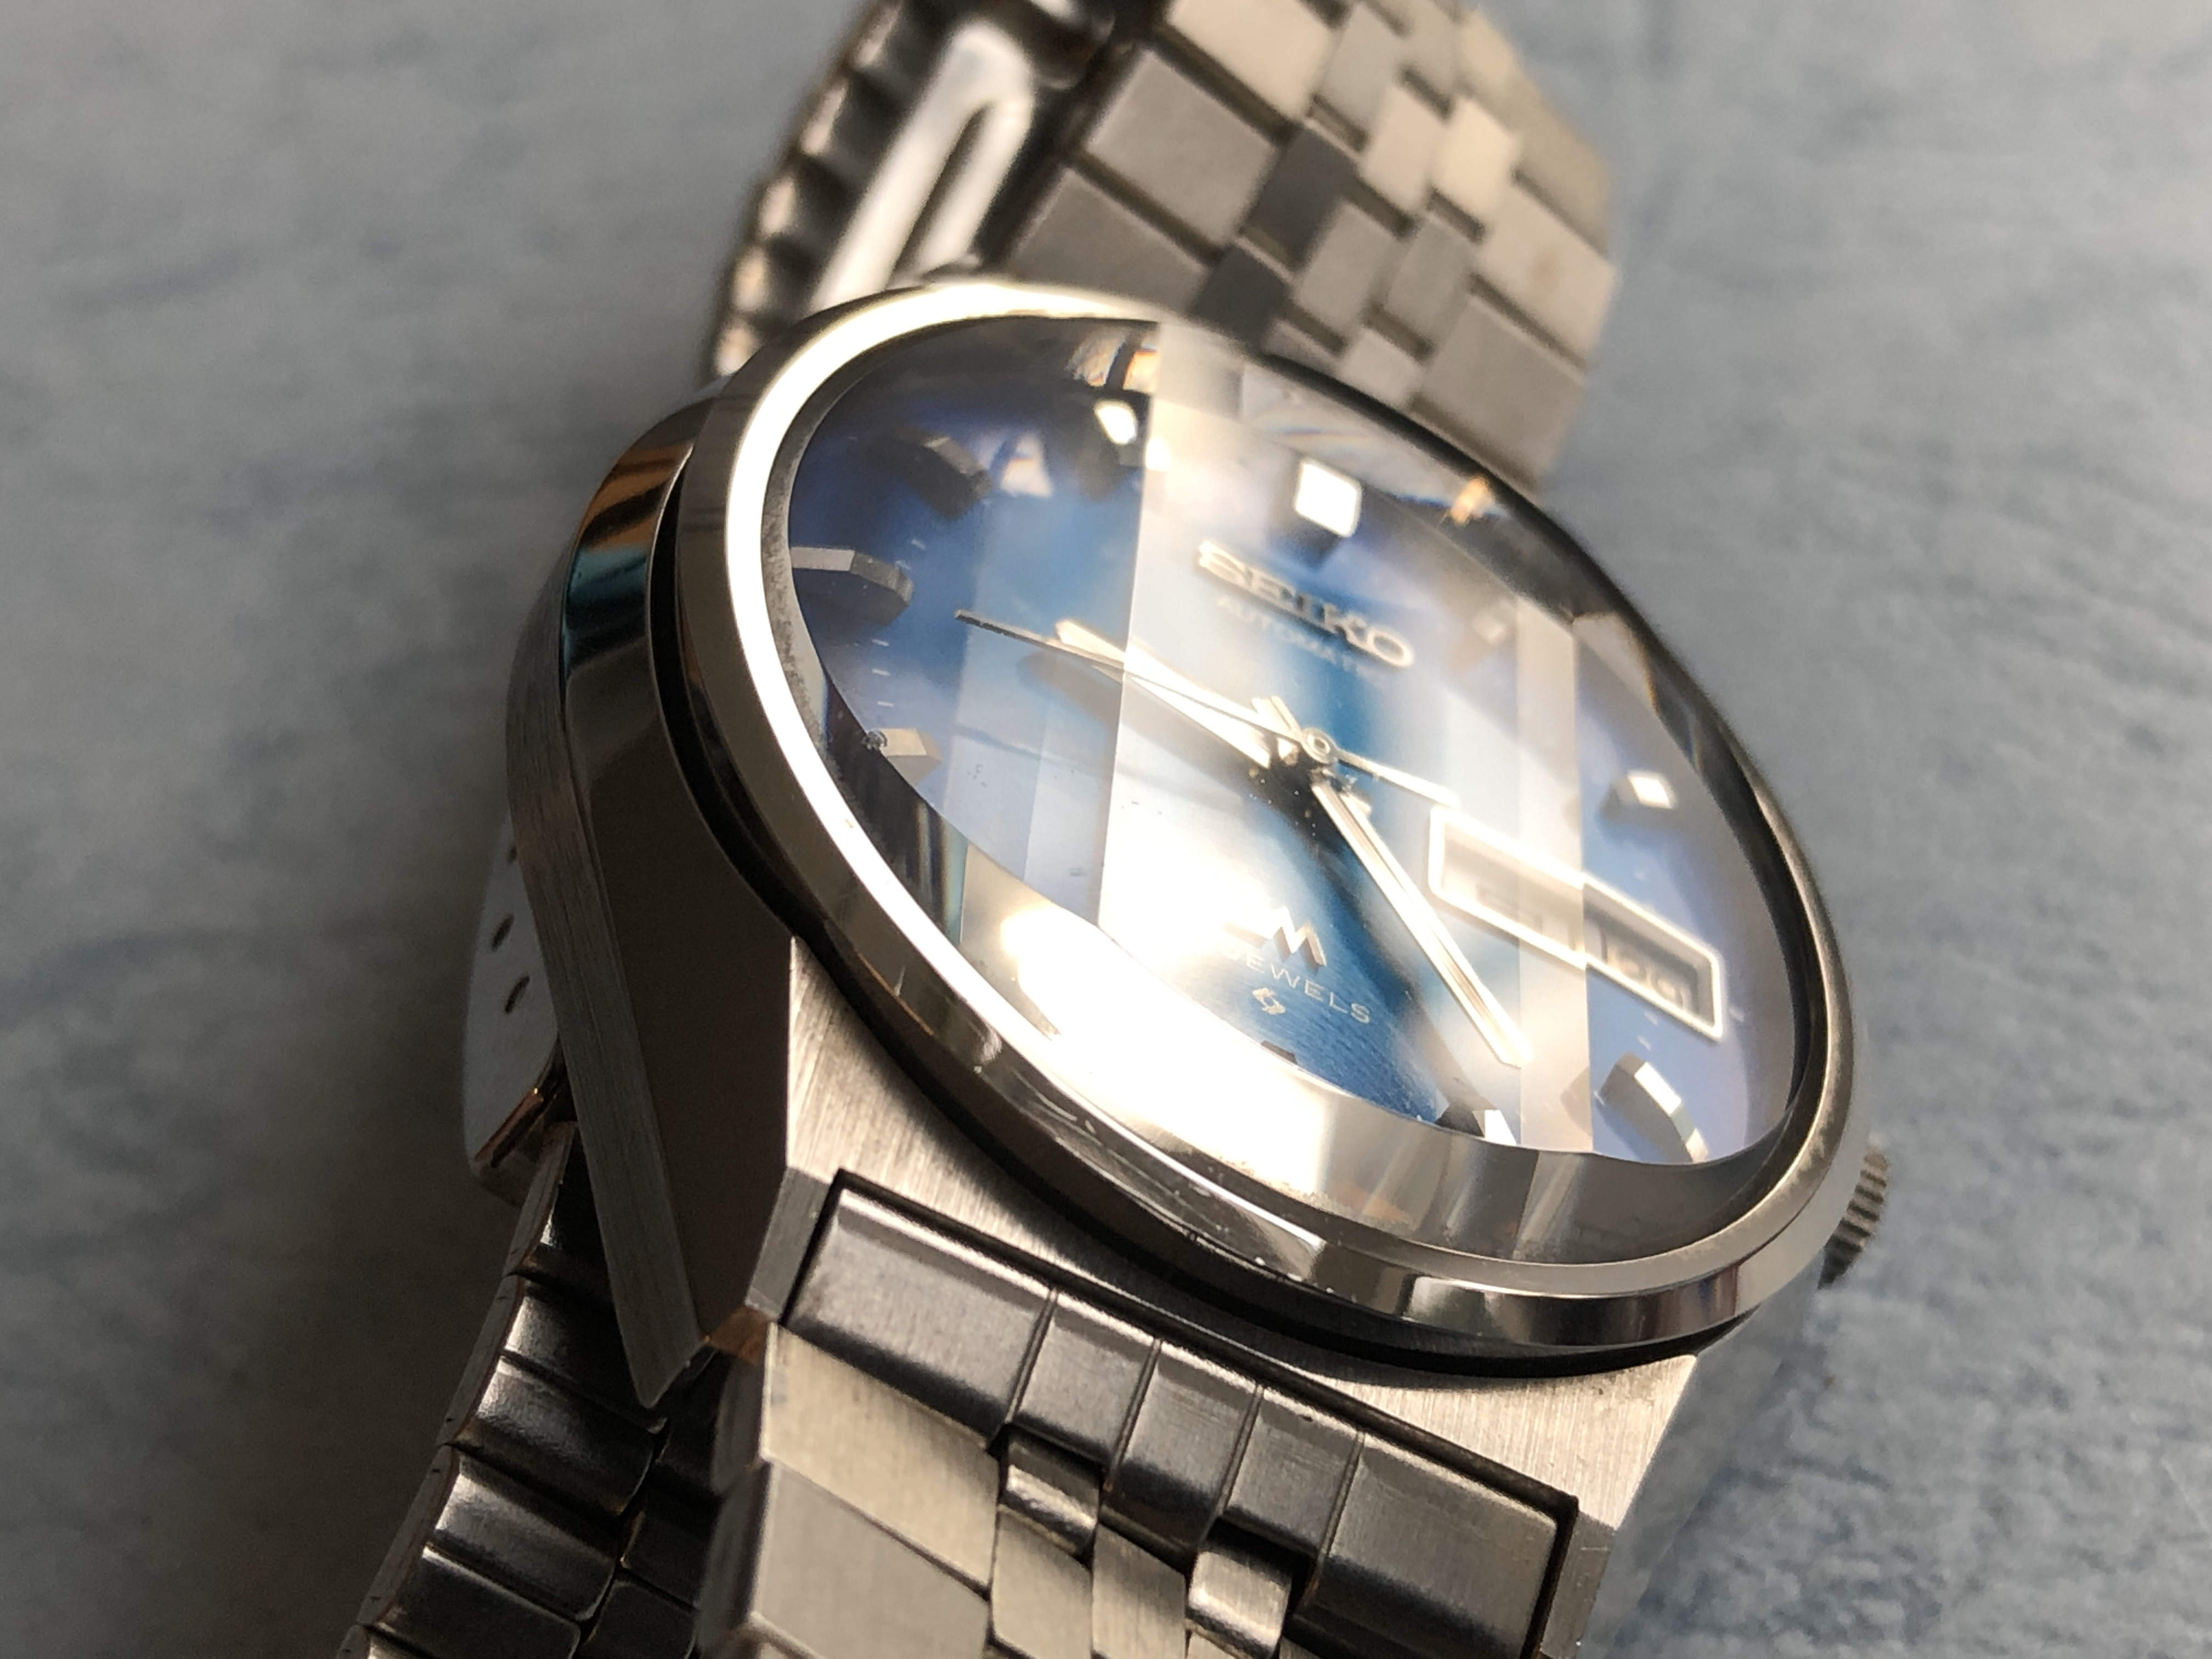 Seiko Lord-Matic 5606-8130 (Sold)